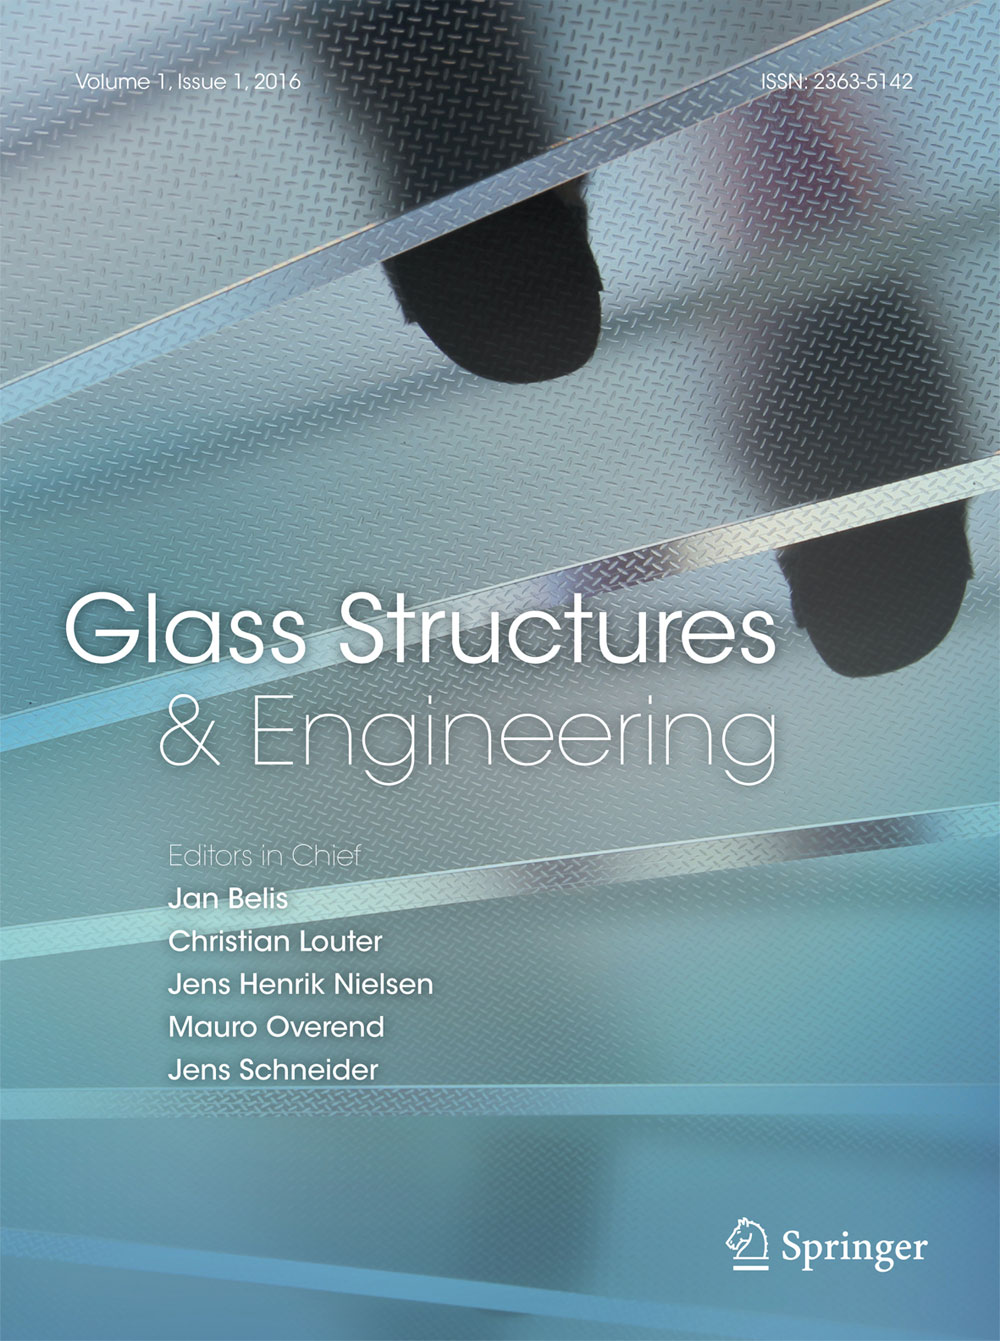 research papers site for structural engineering